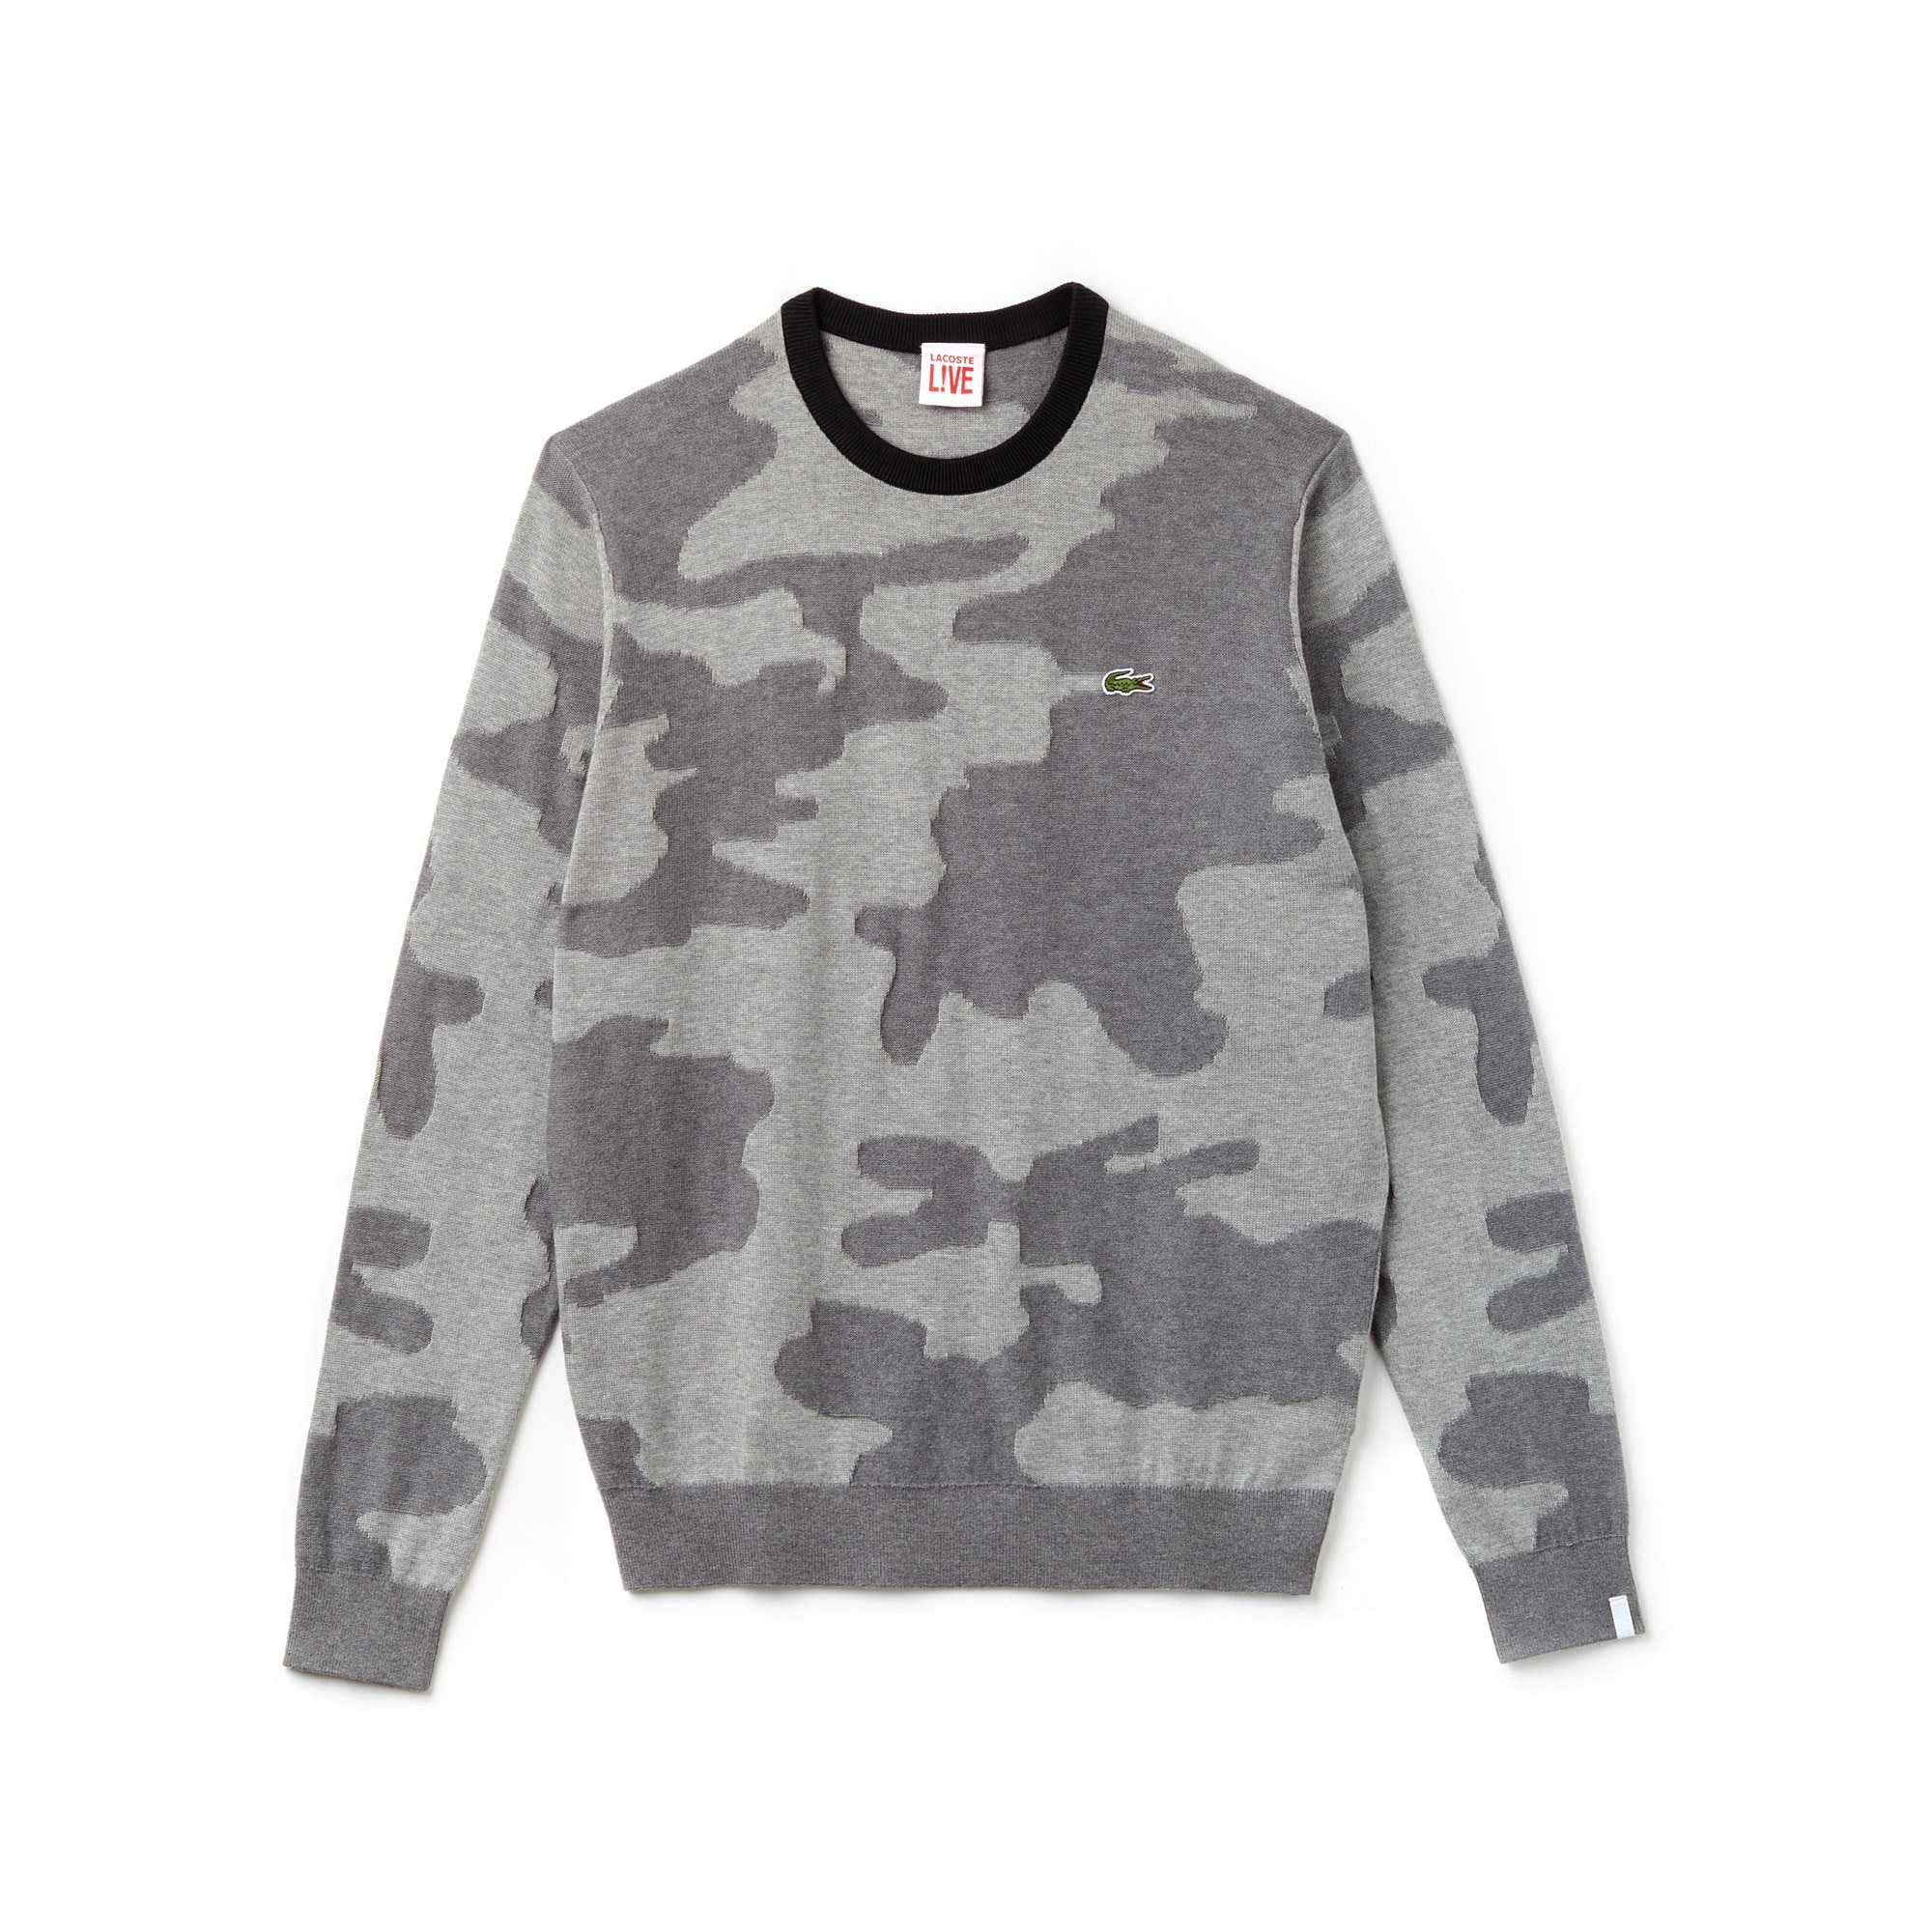 Lacoste LIVE-T-sweater heren ronde hals camouflageprint jacquard